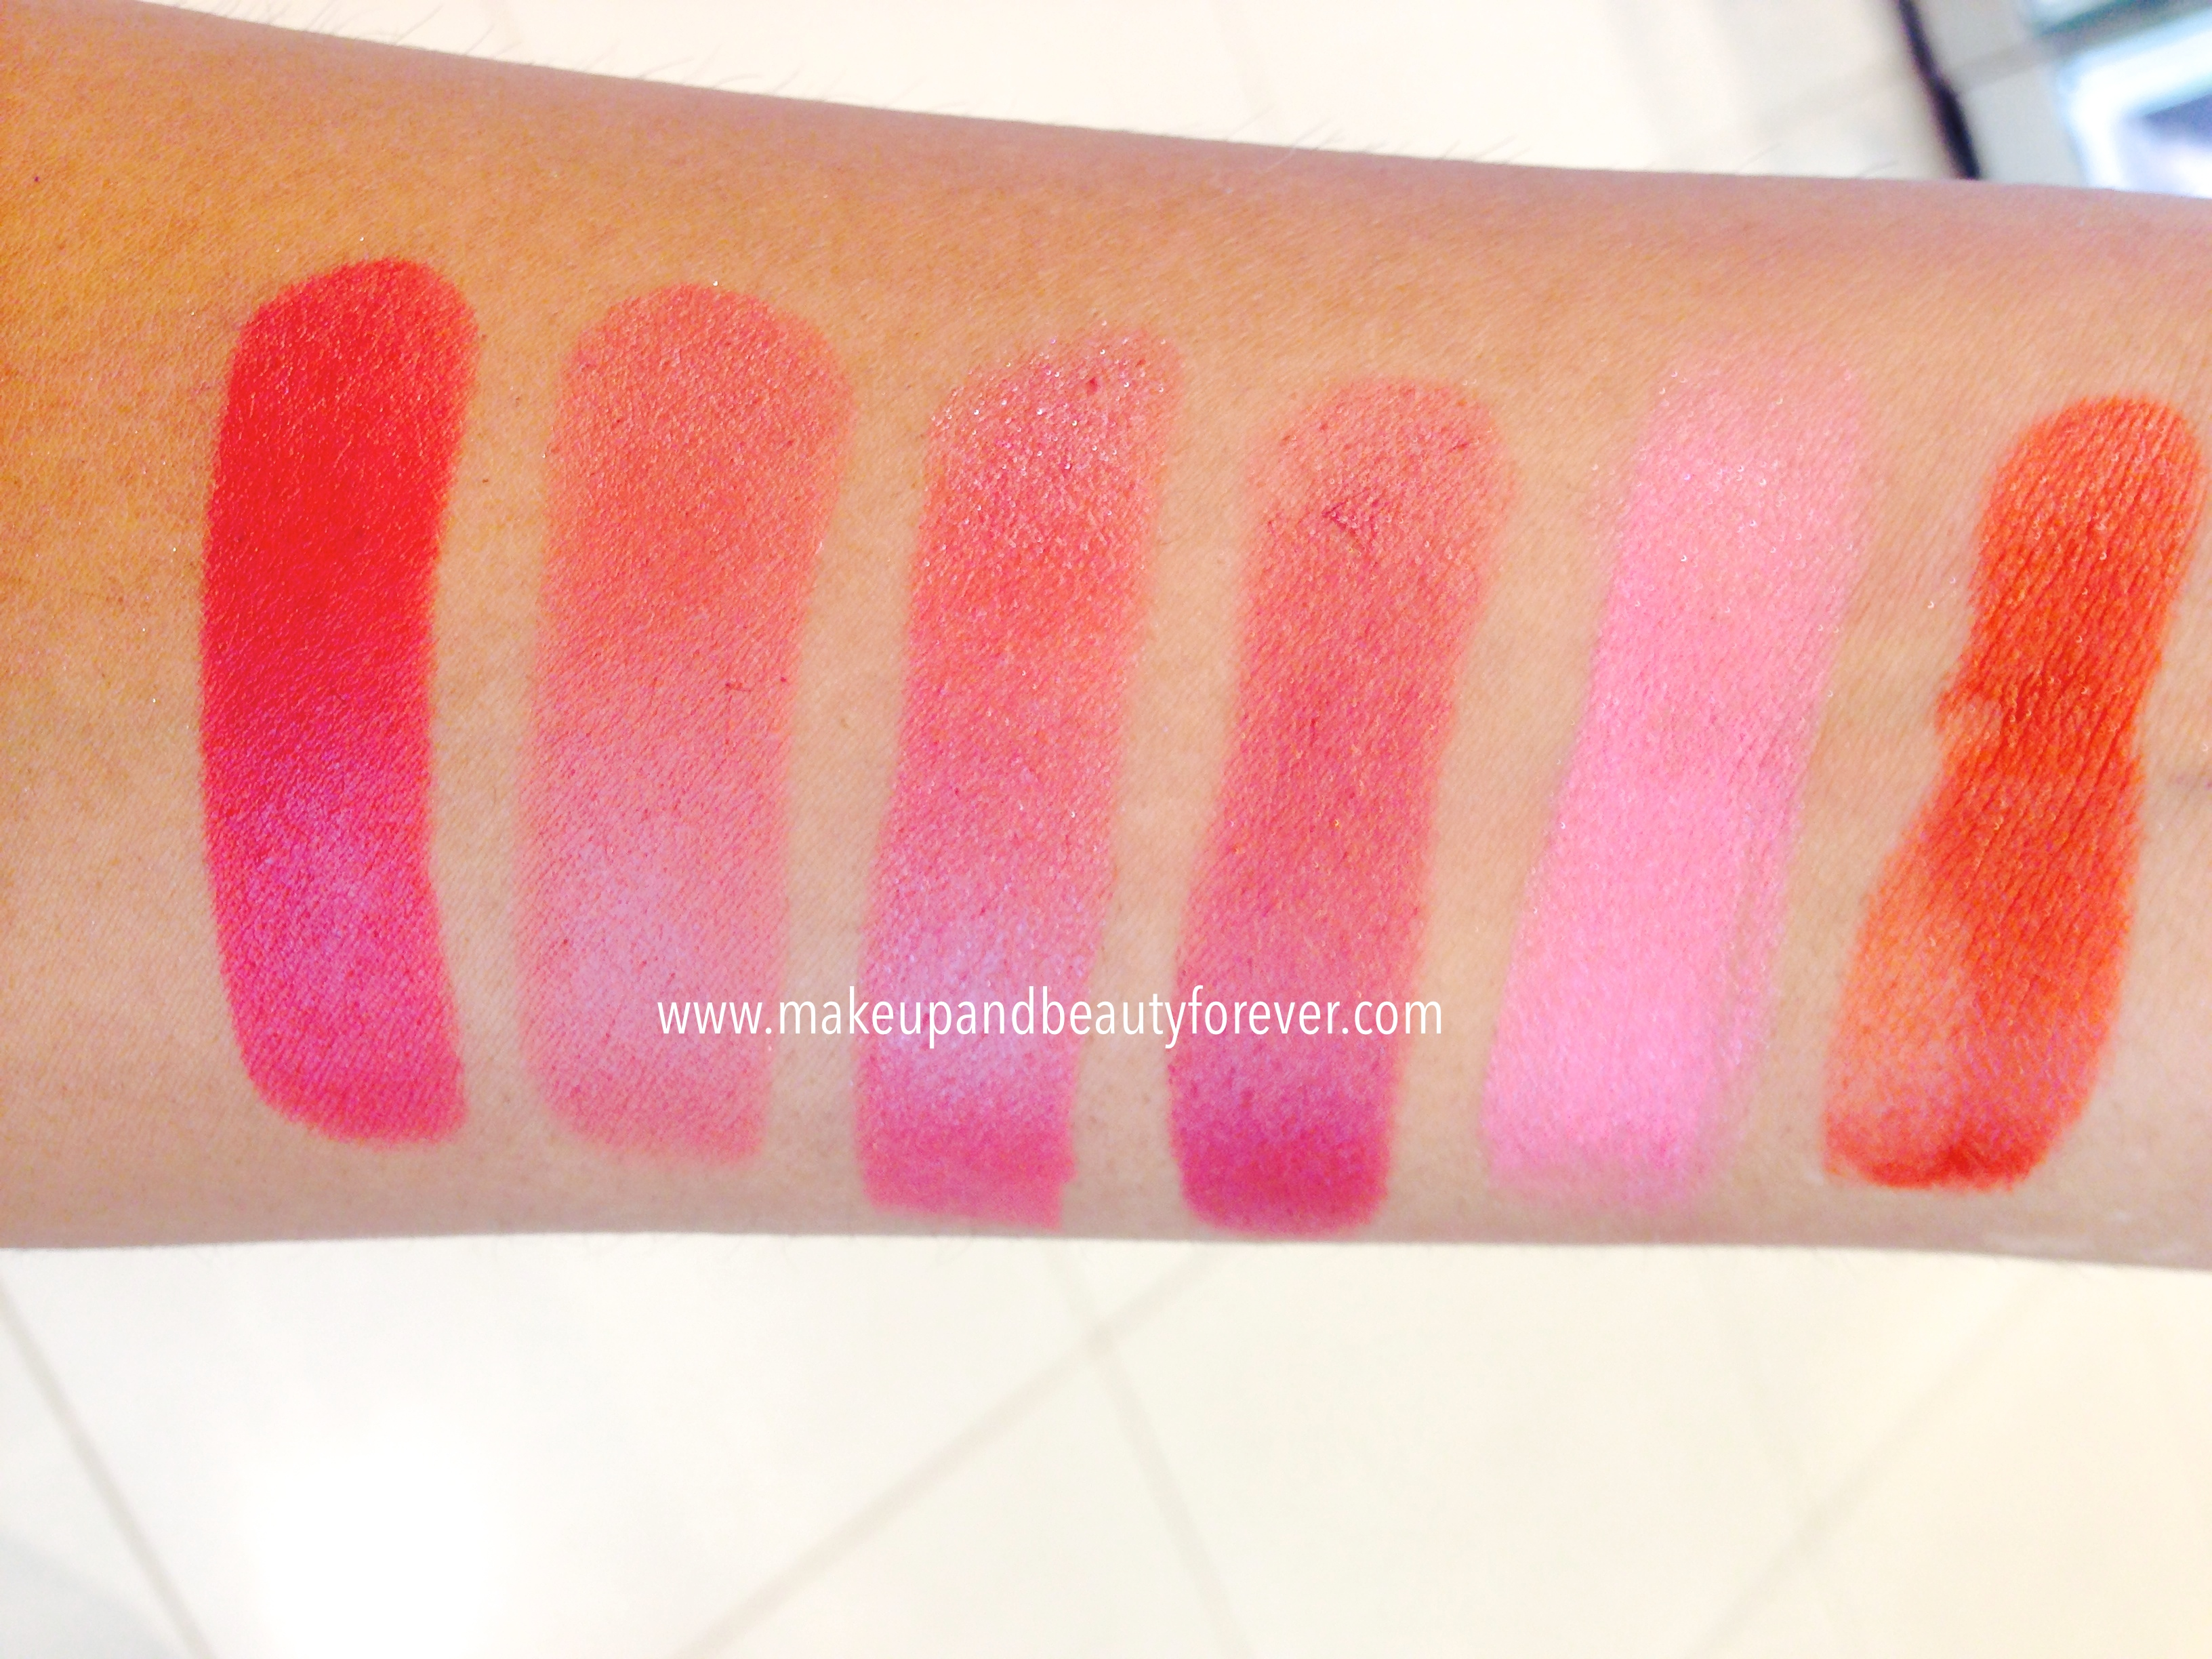 Lakme 9 to 5 Matte Lipstick Lip Color Review, Shades ...